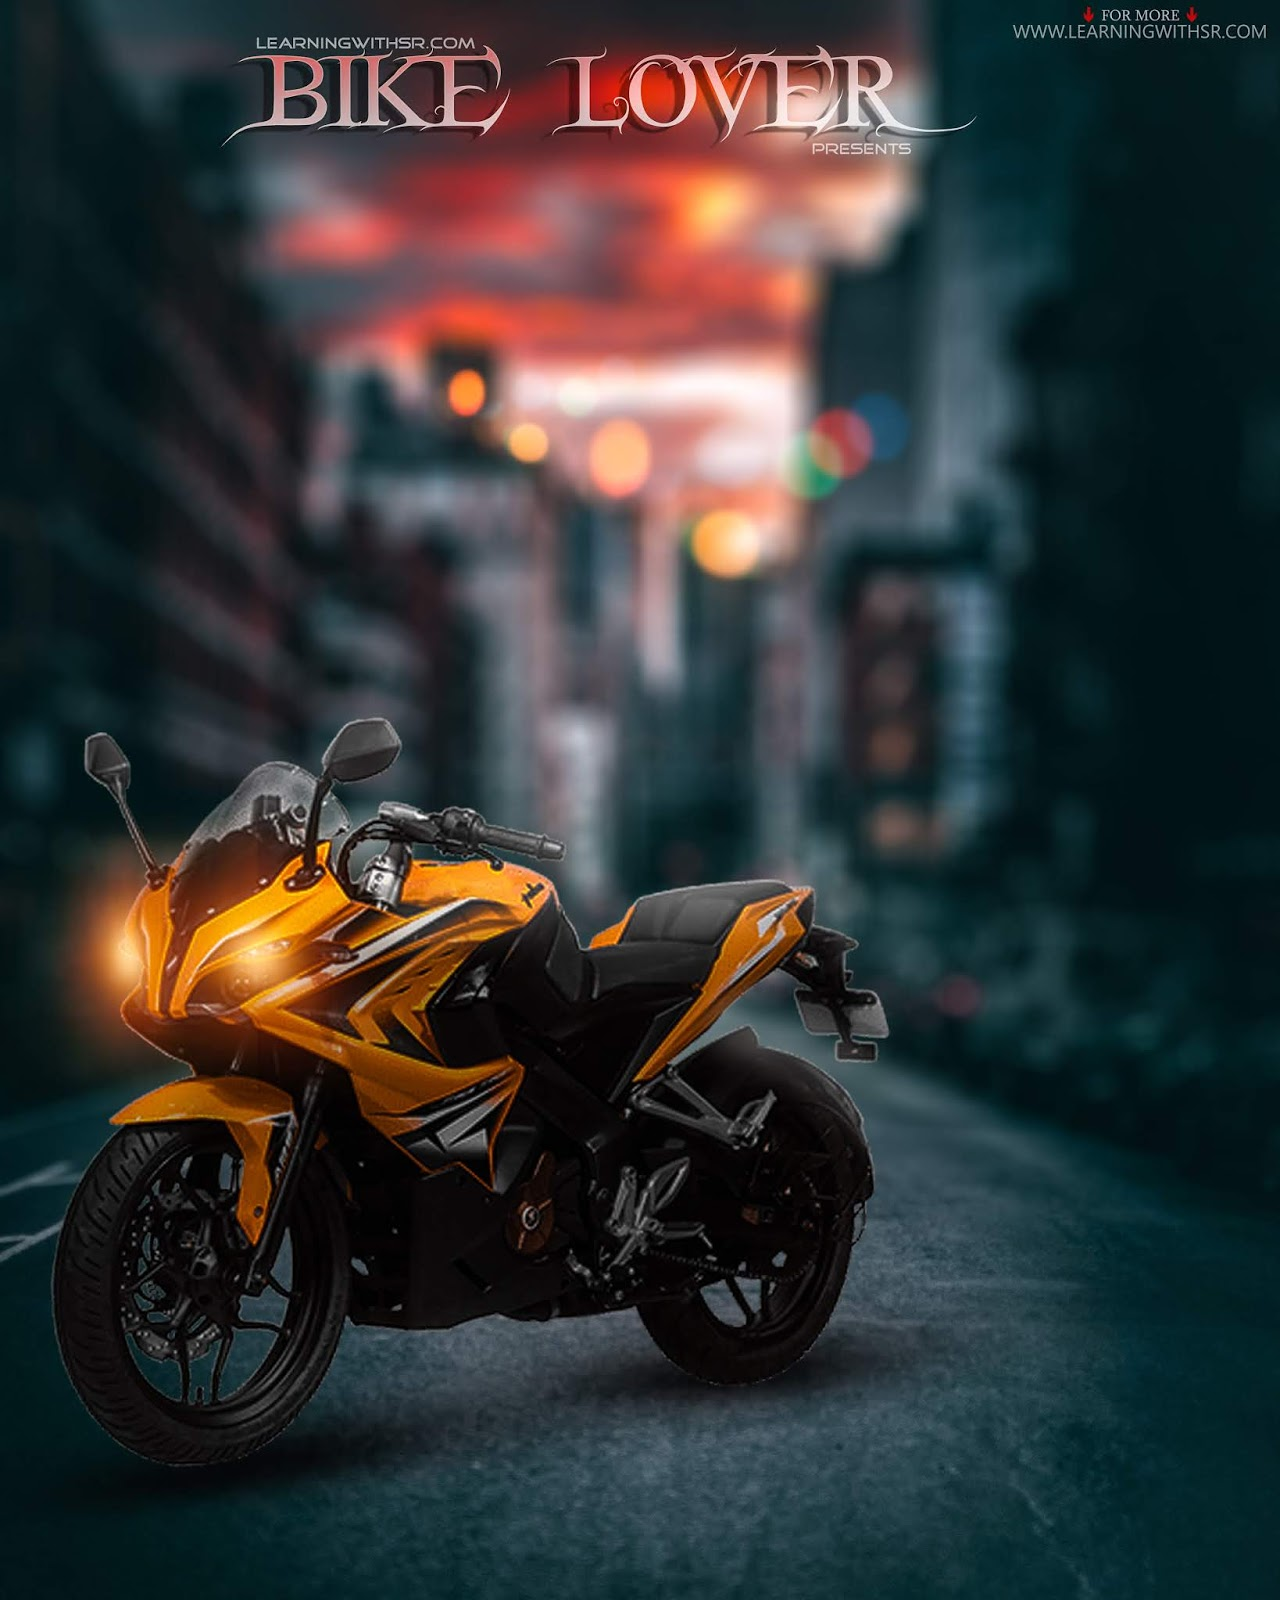 Bike photo editing background download